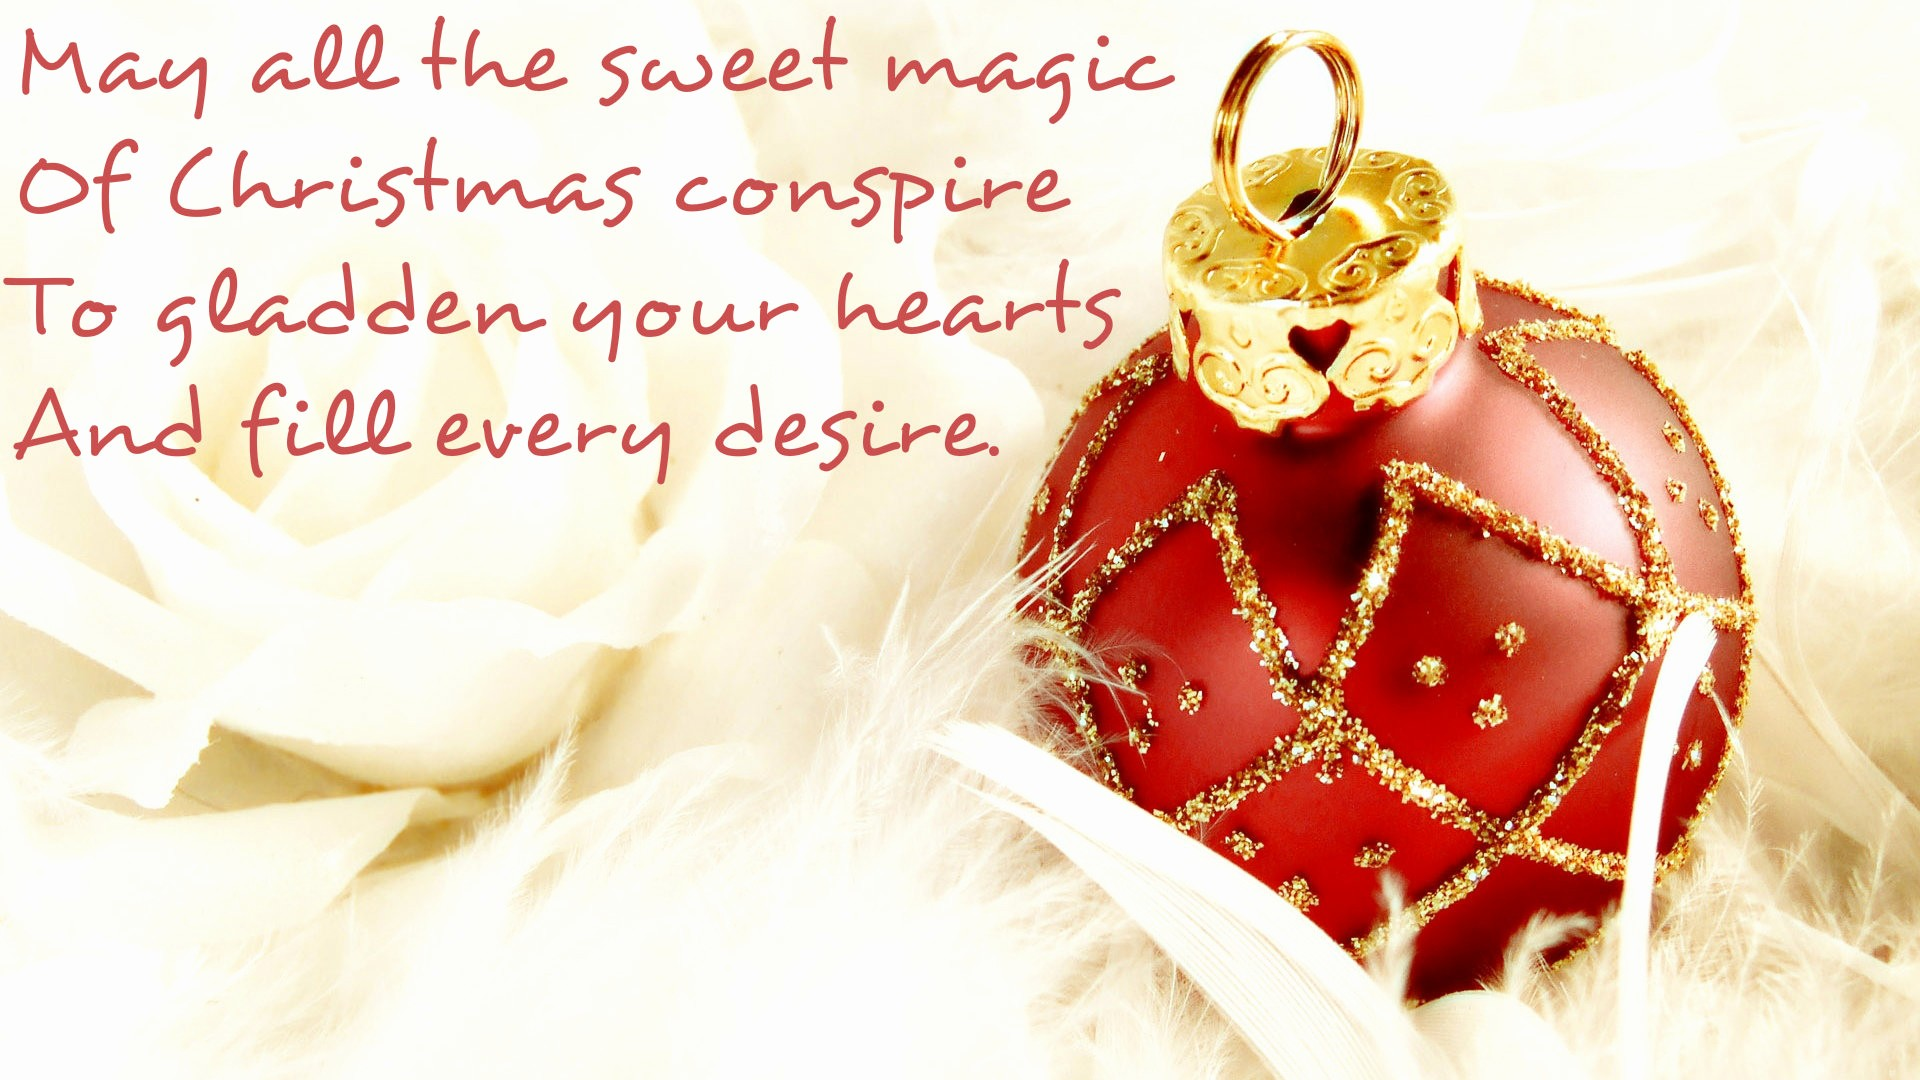 Merry Christmas Notes for Cards New Christmas Wishes Messages and Christmas Quotes